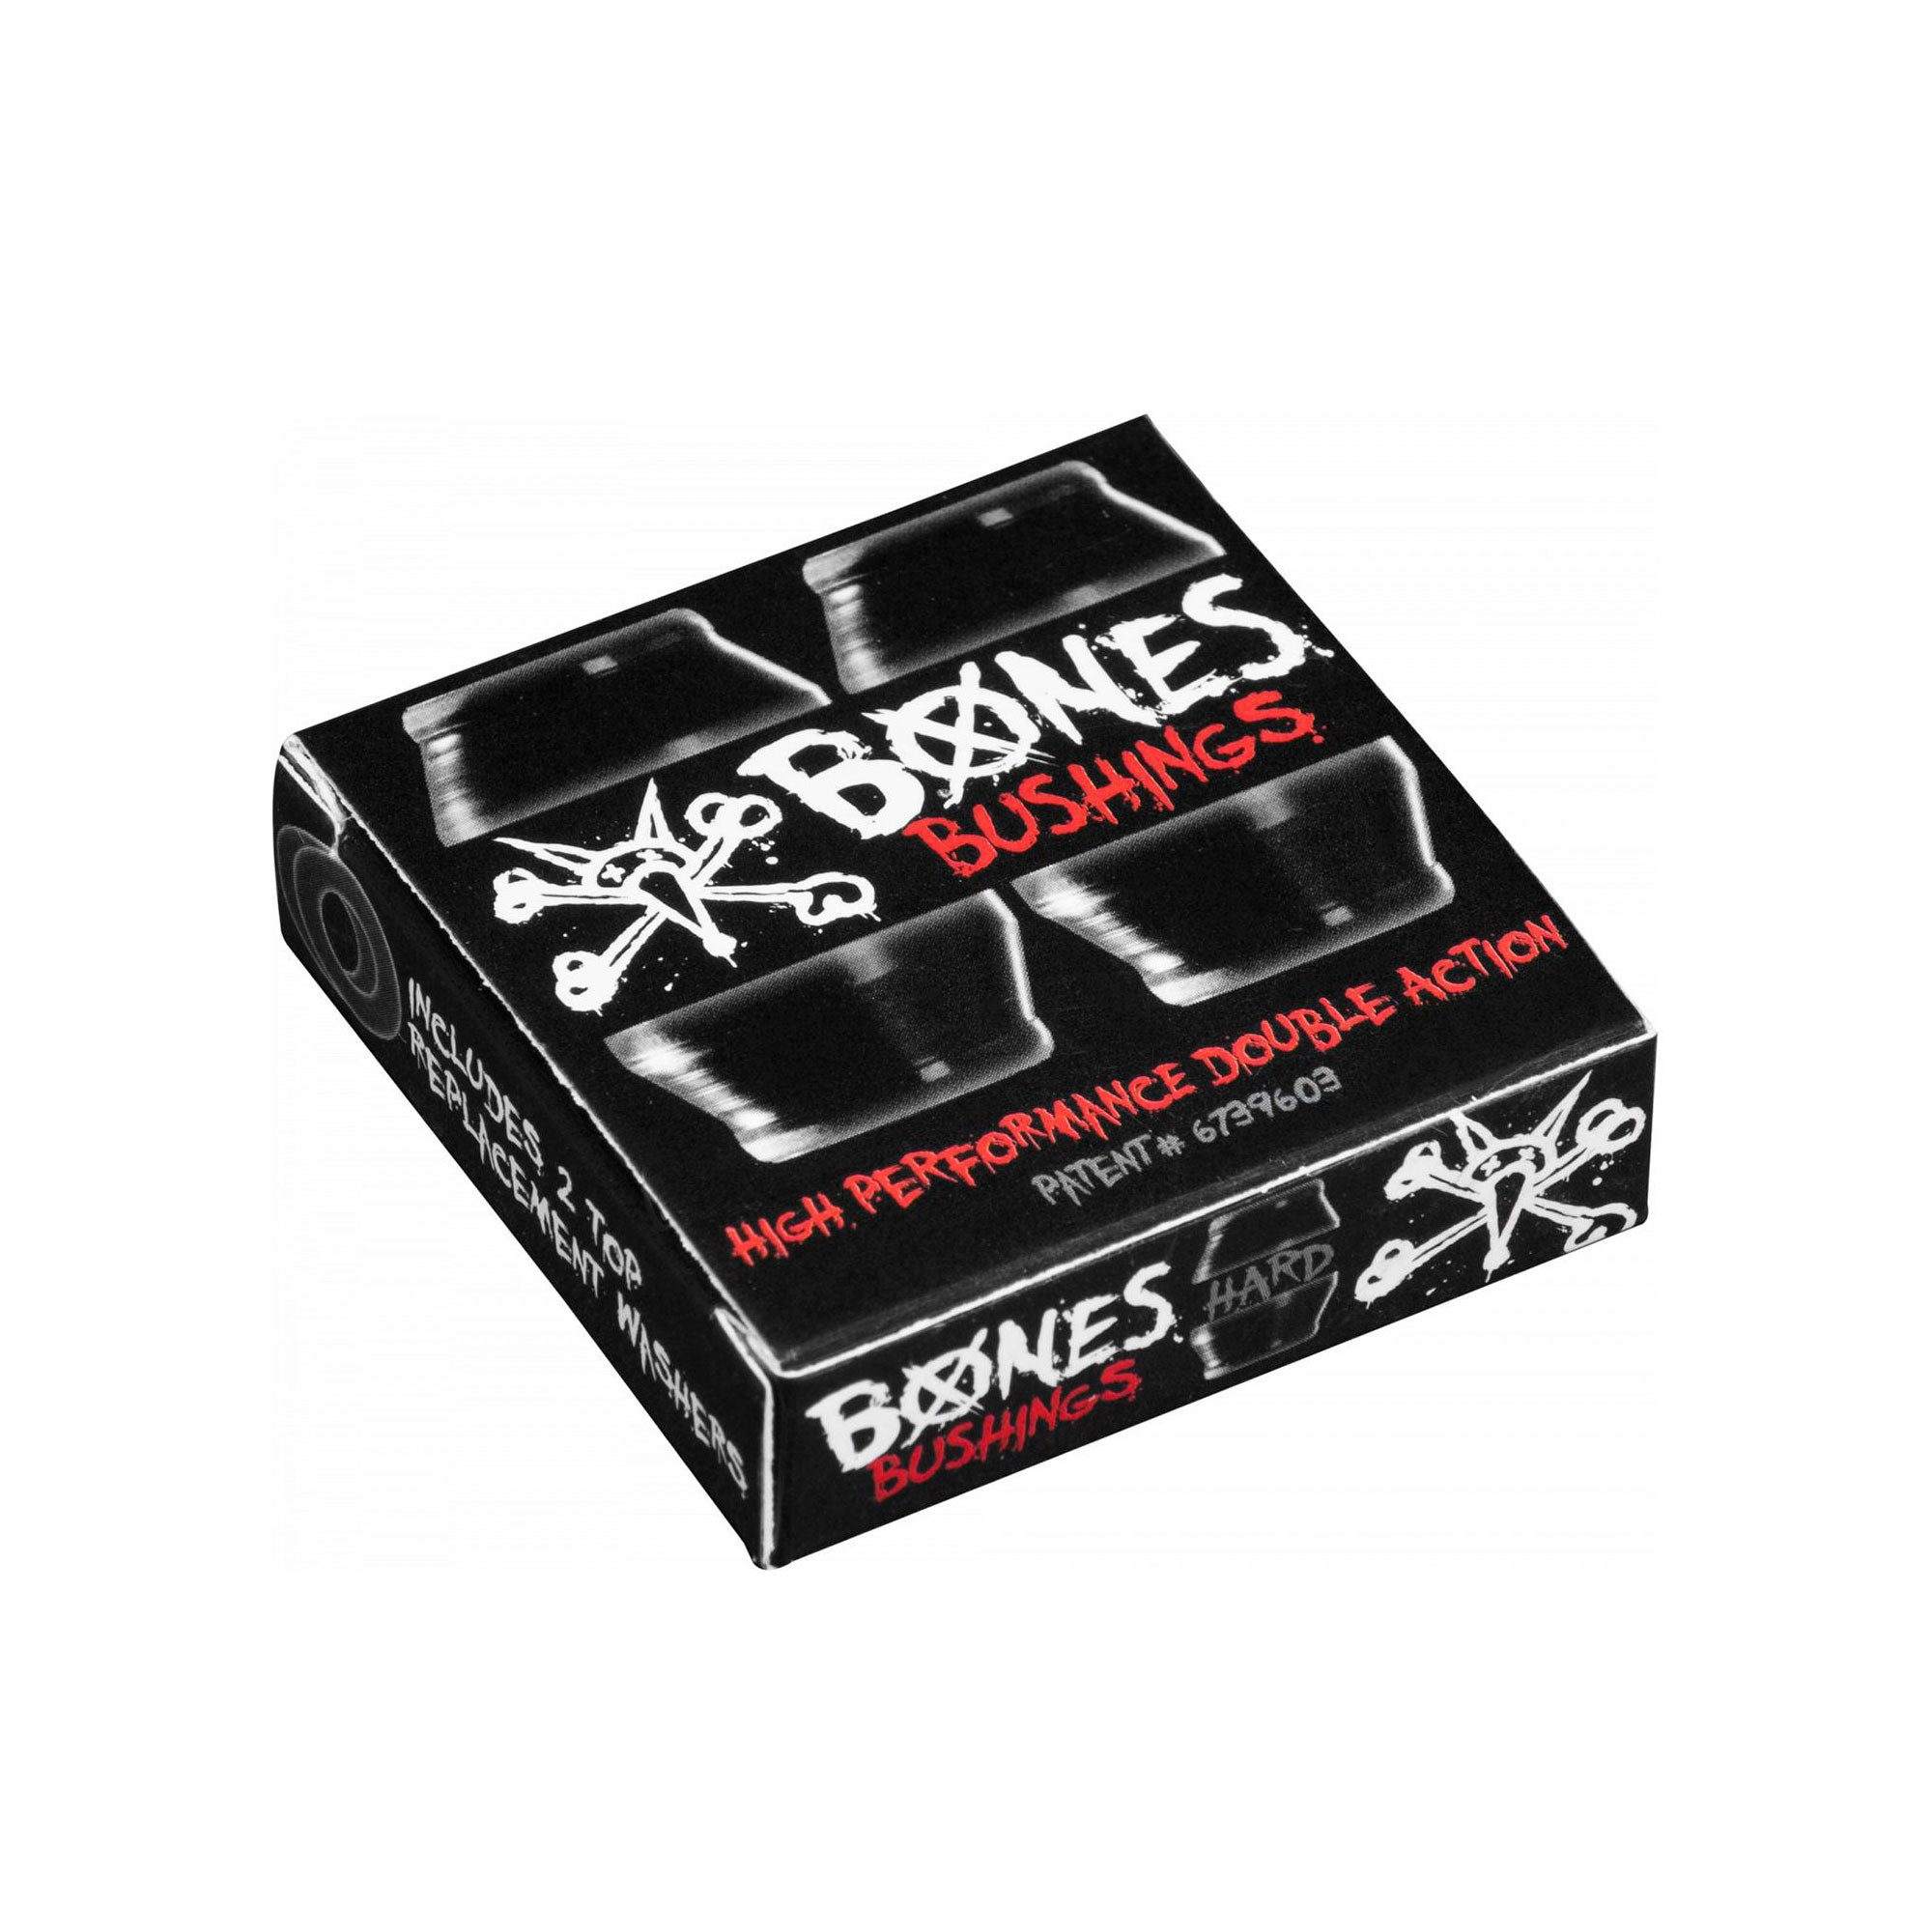 Bones Hardcore Bushings Product Photo #1